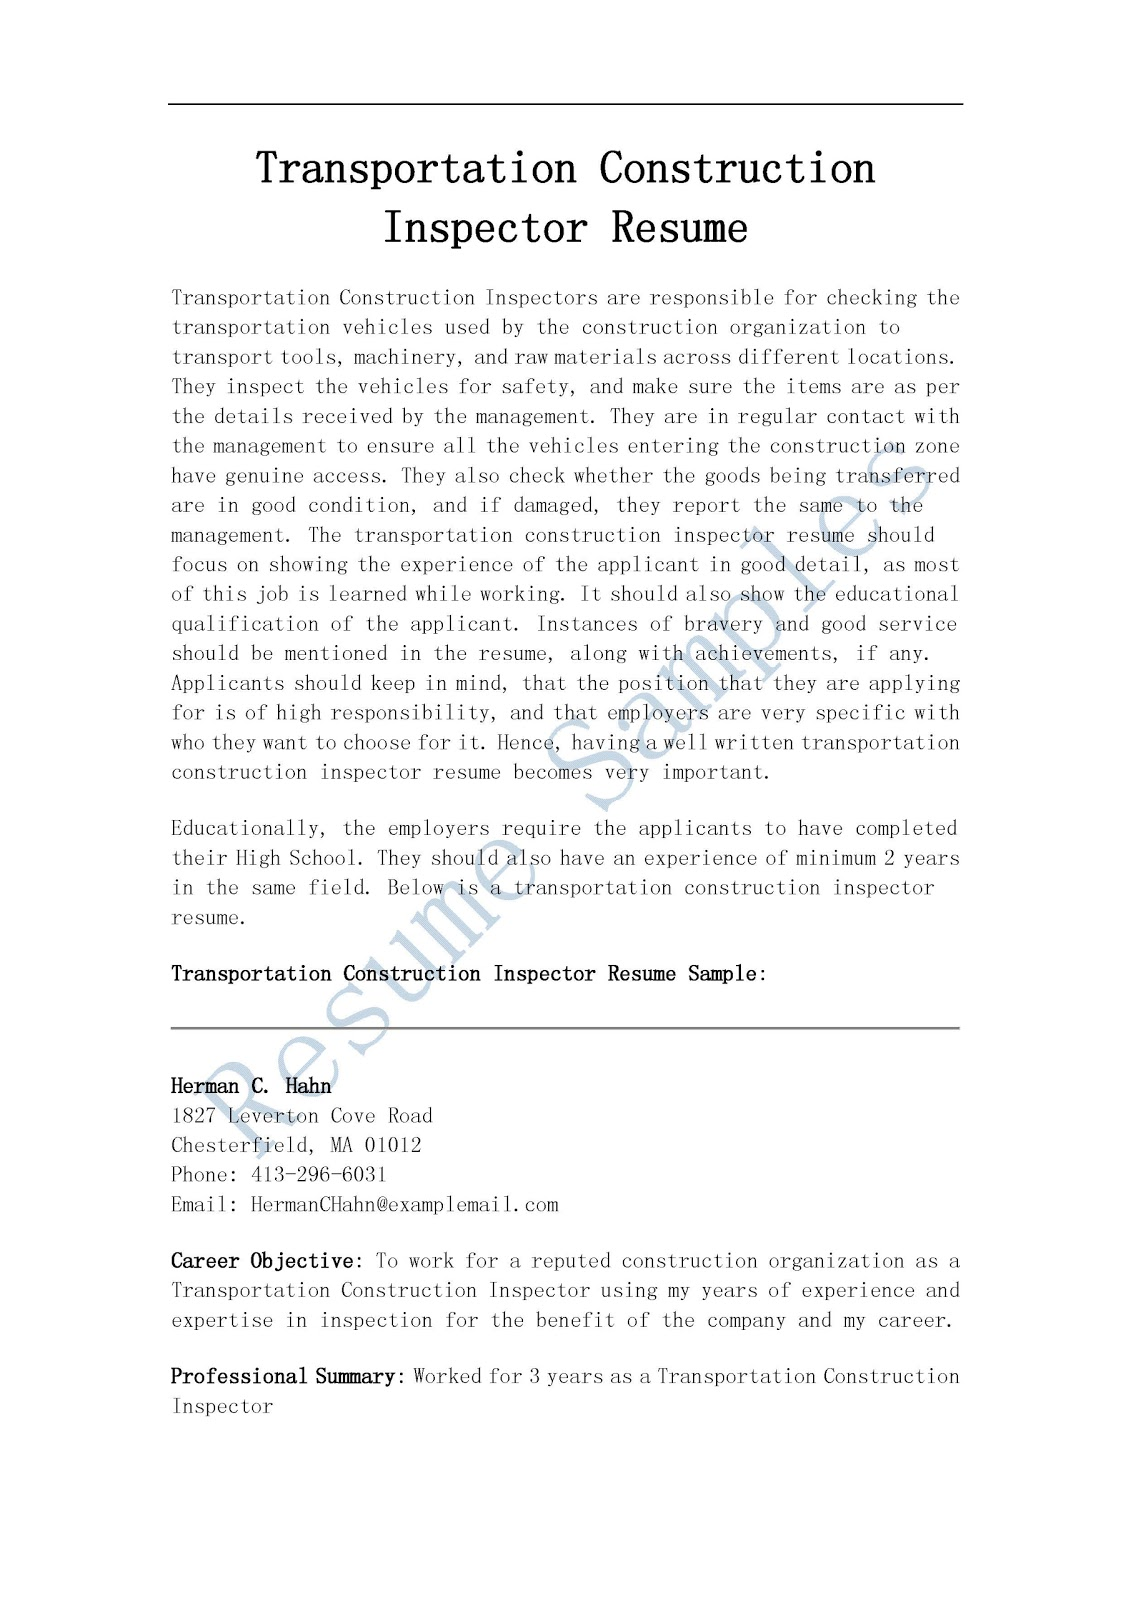 resume for business relationship manager resume builder resume for business relationship manager business development manager resume sample resume also resume writing guidelines